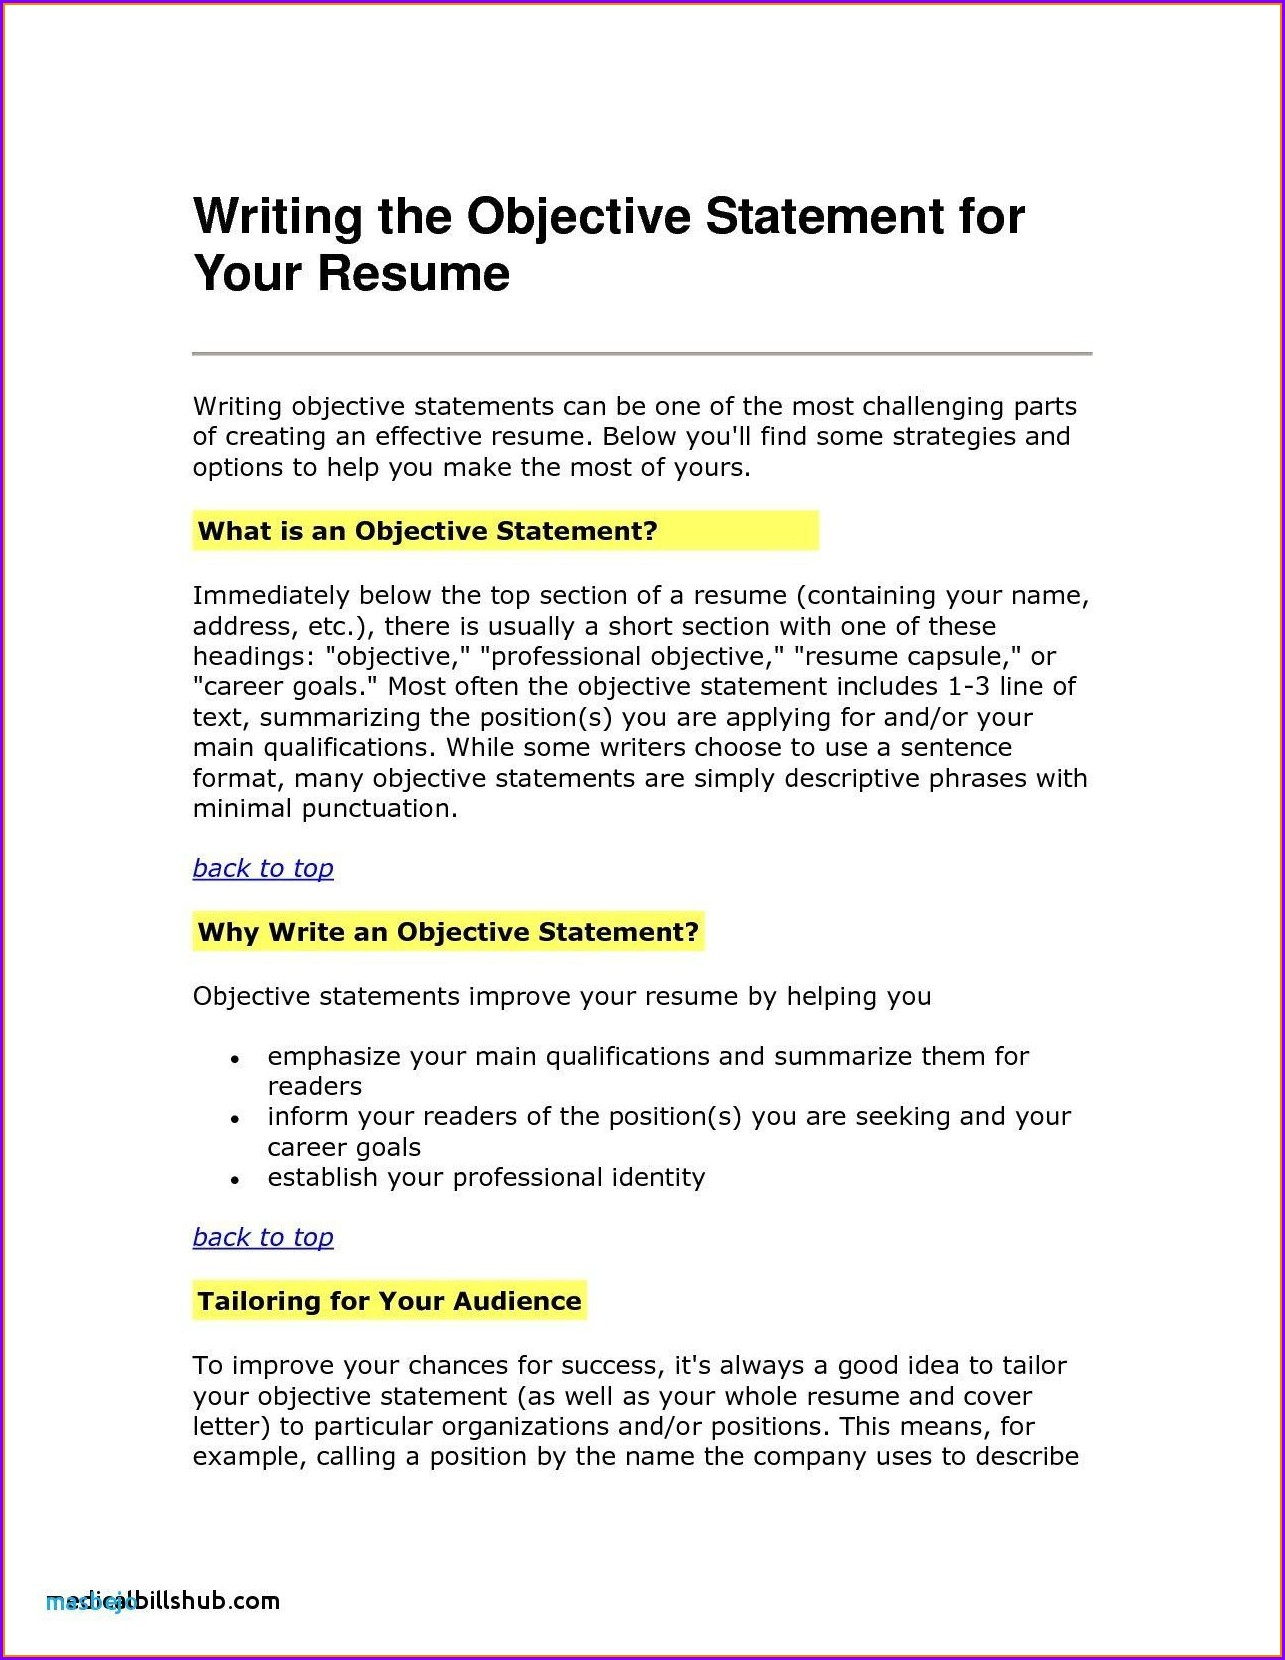 Top Books On Resume Writing